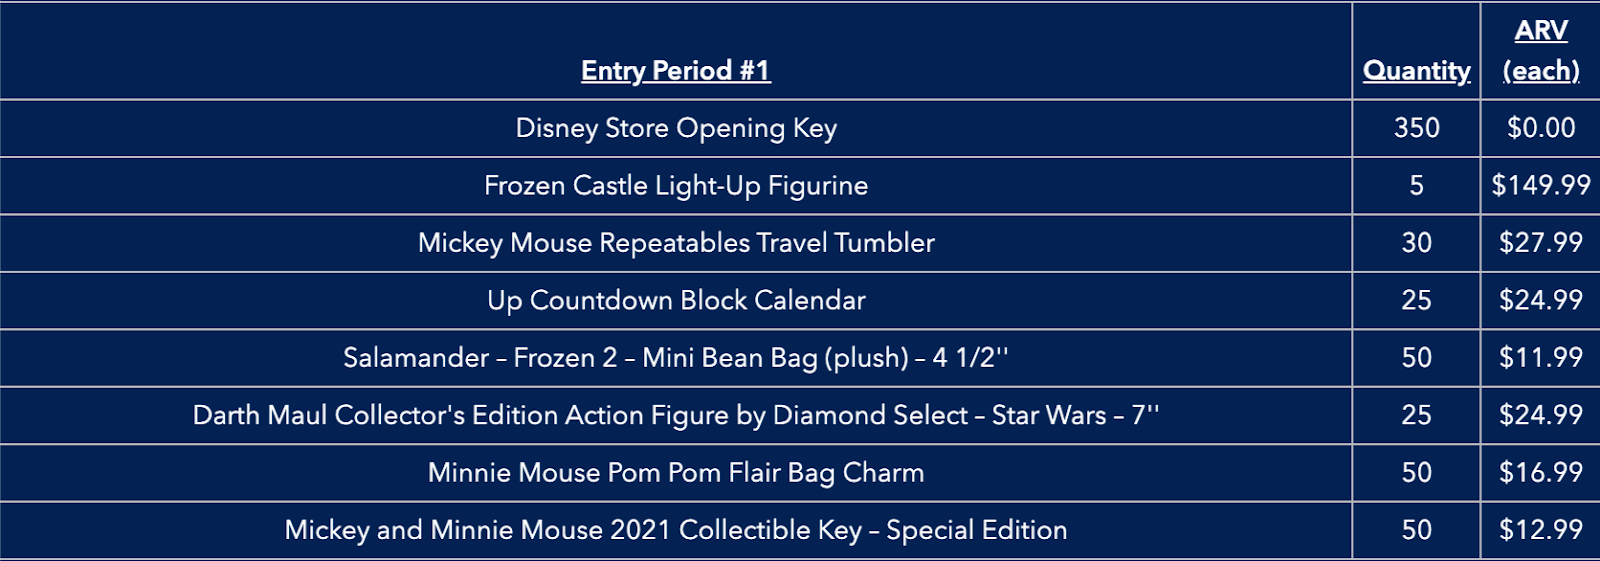 Unlock the Magic Giveaway prizes available during entry period 1.